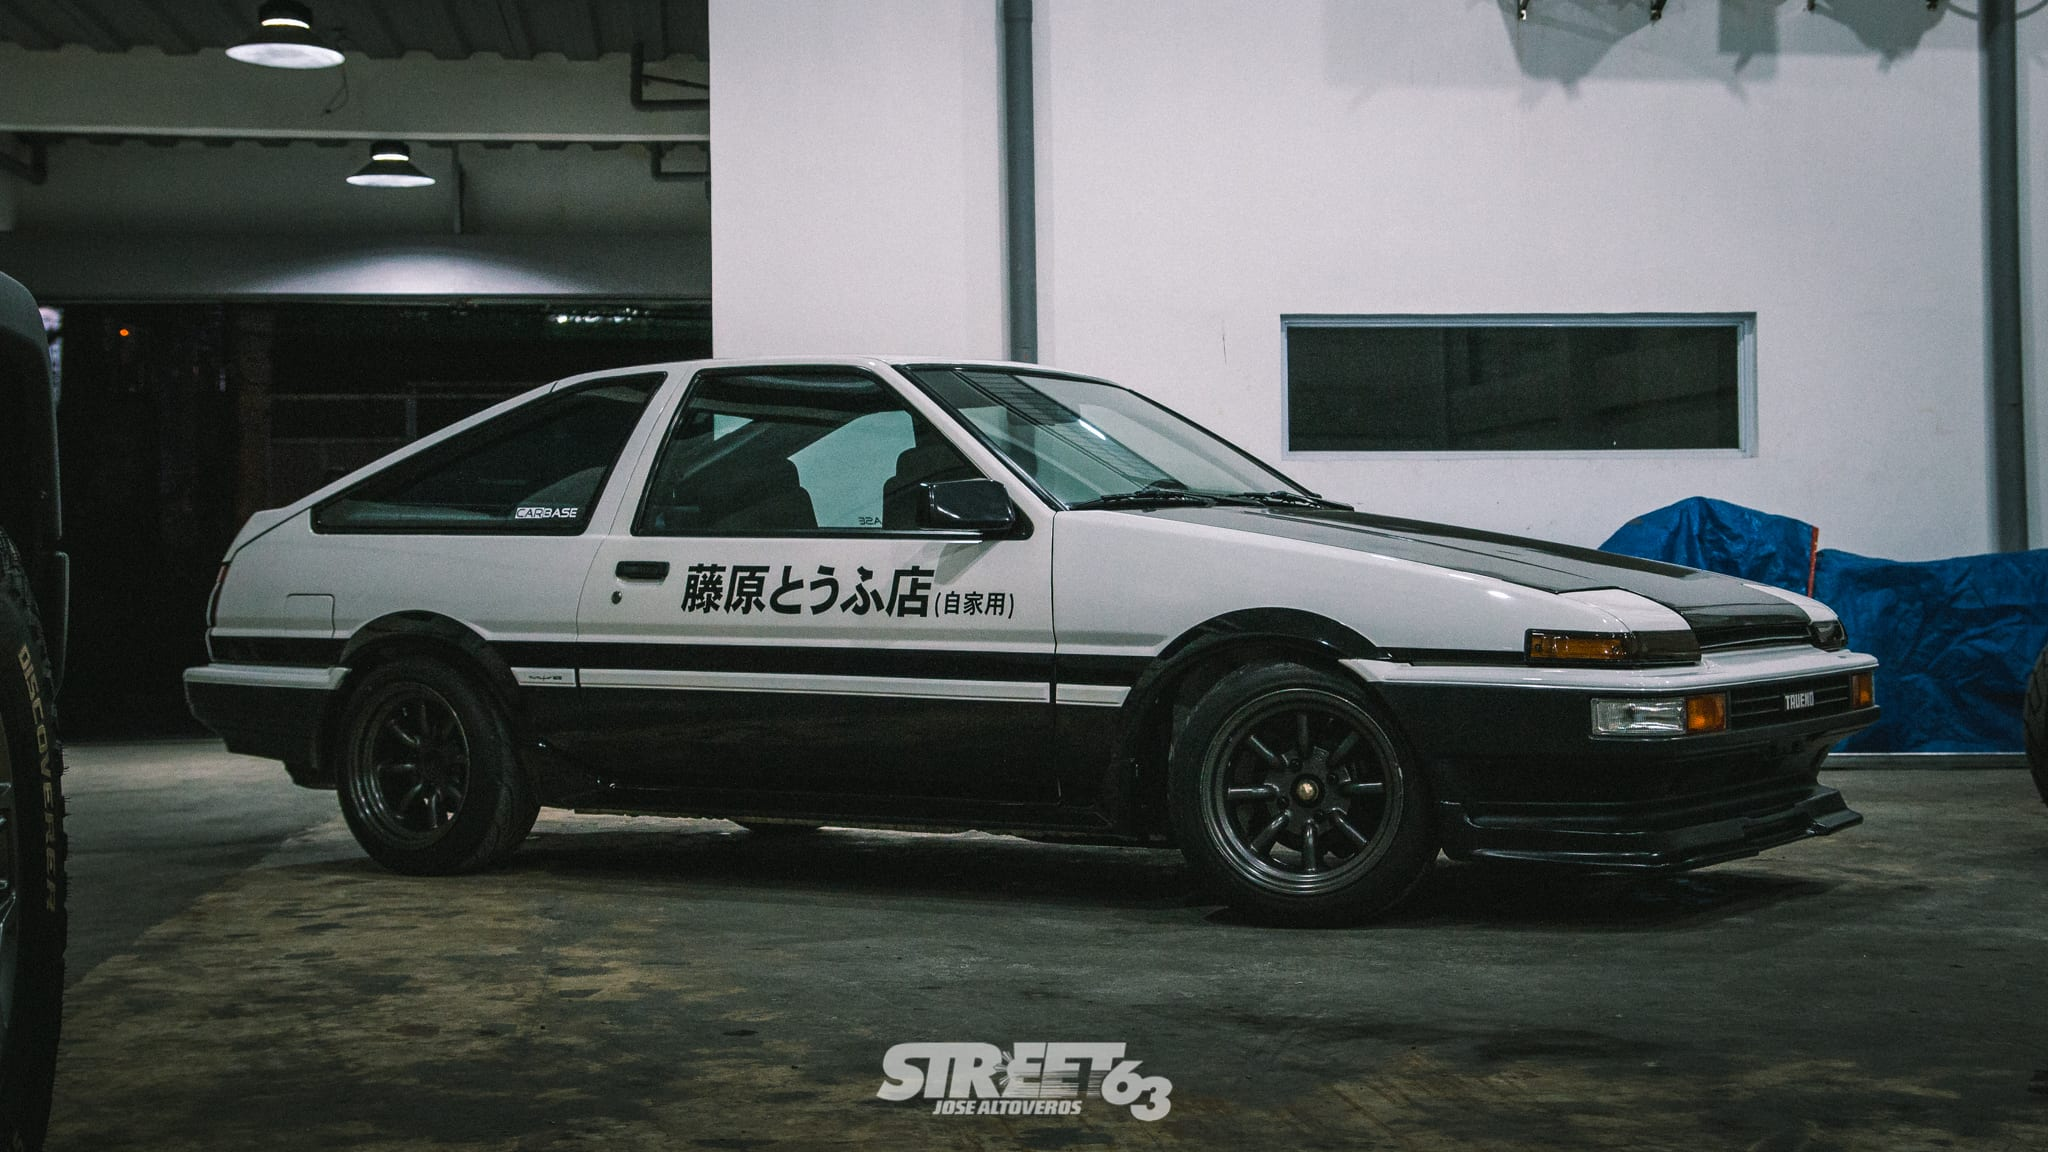 **Soybean Runner:** An Afternoon with an AE86